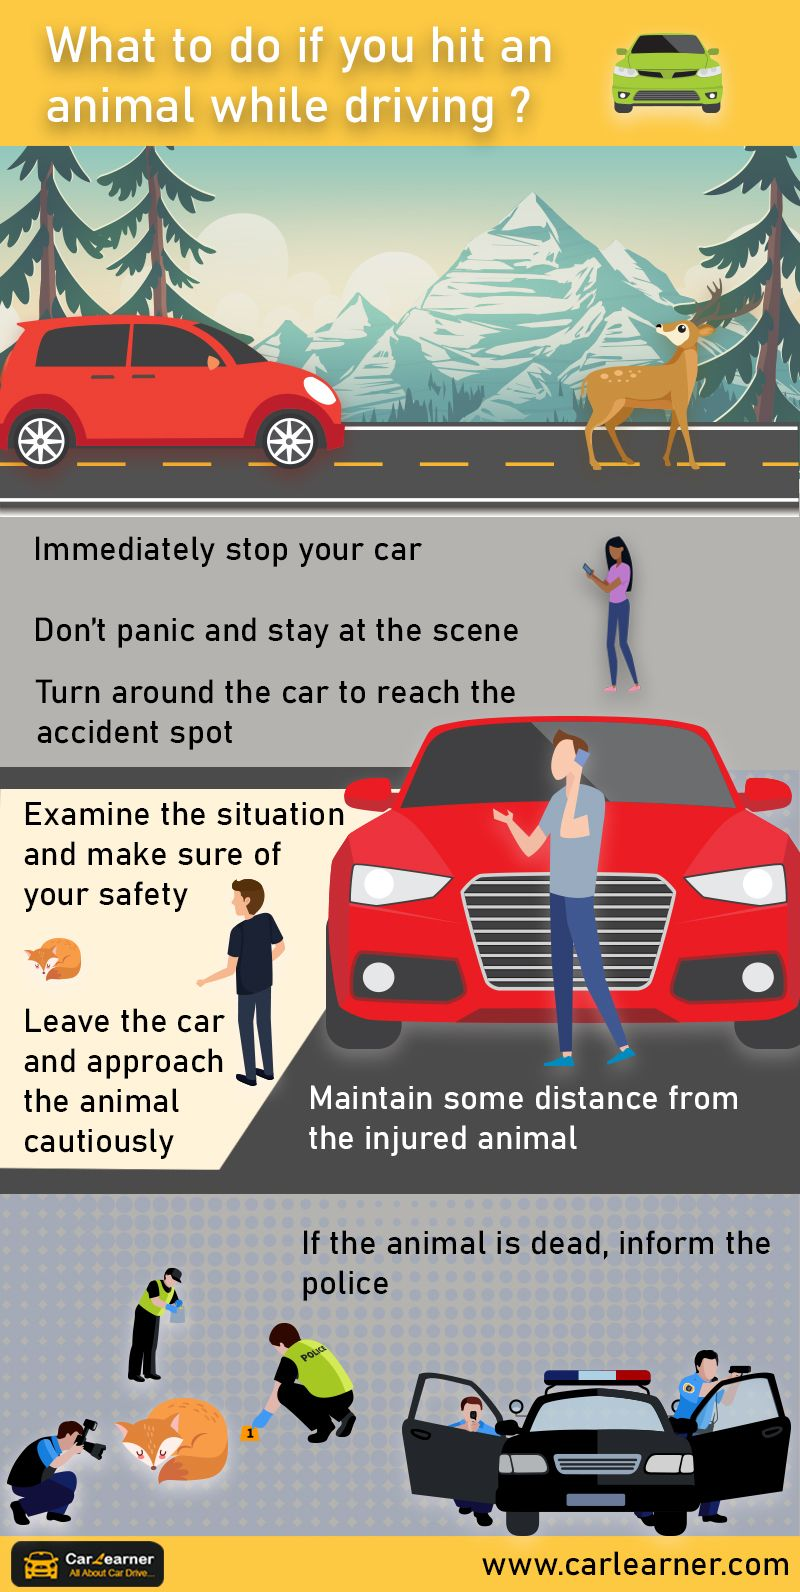 What To Do If You Hit An Animal While Driving